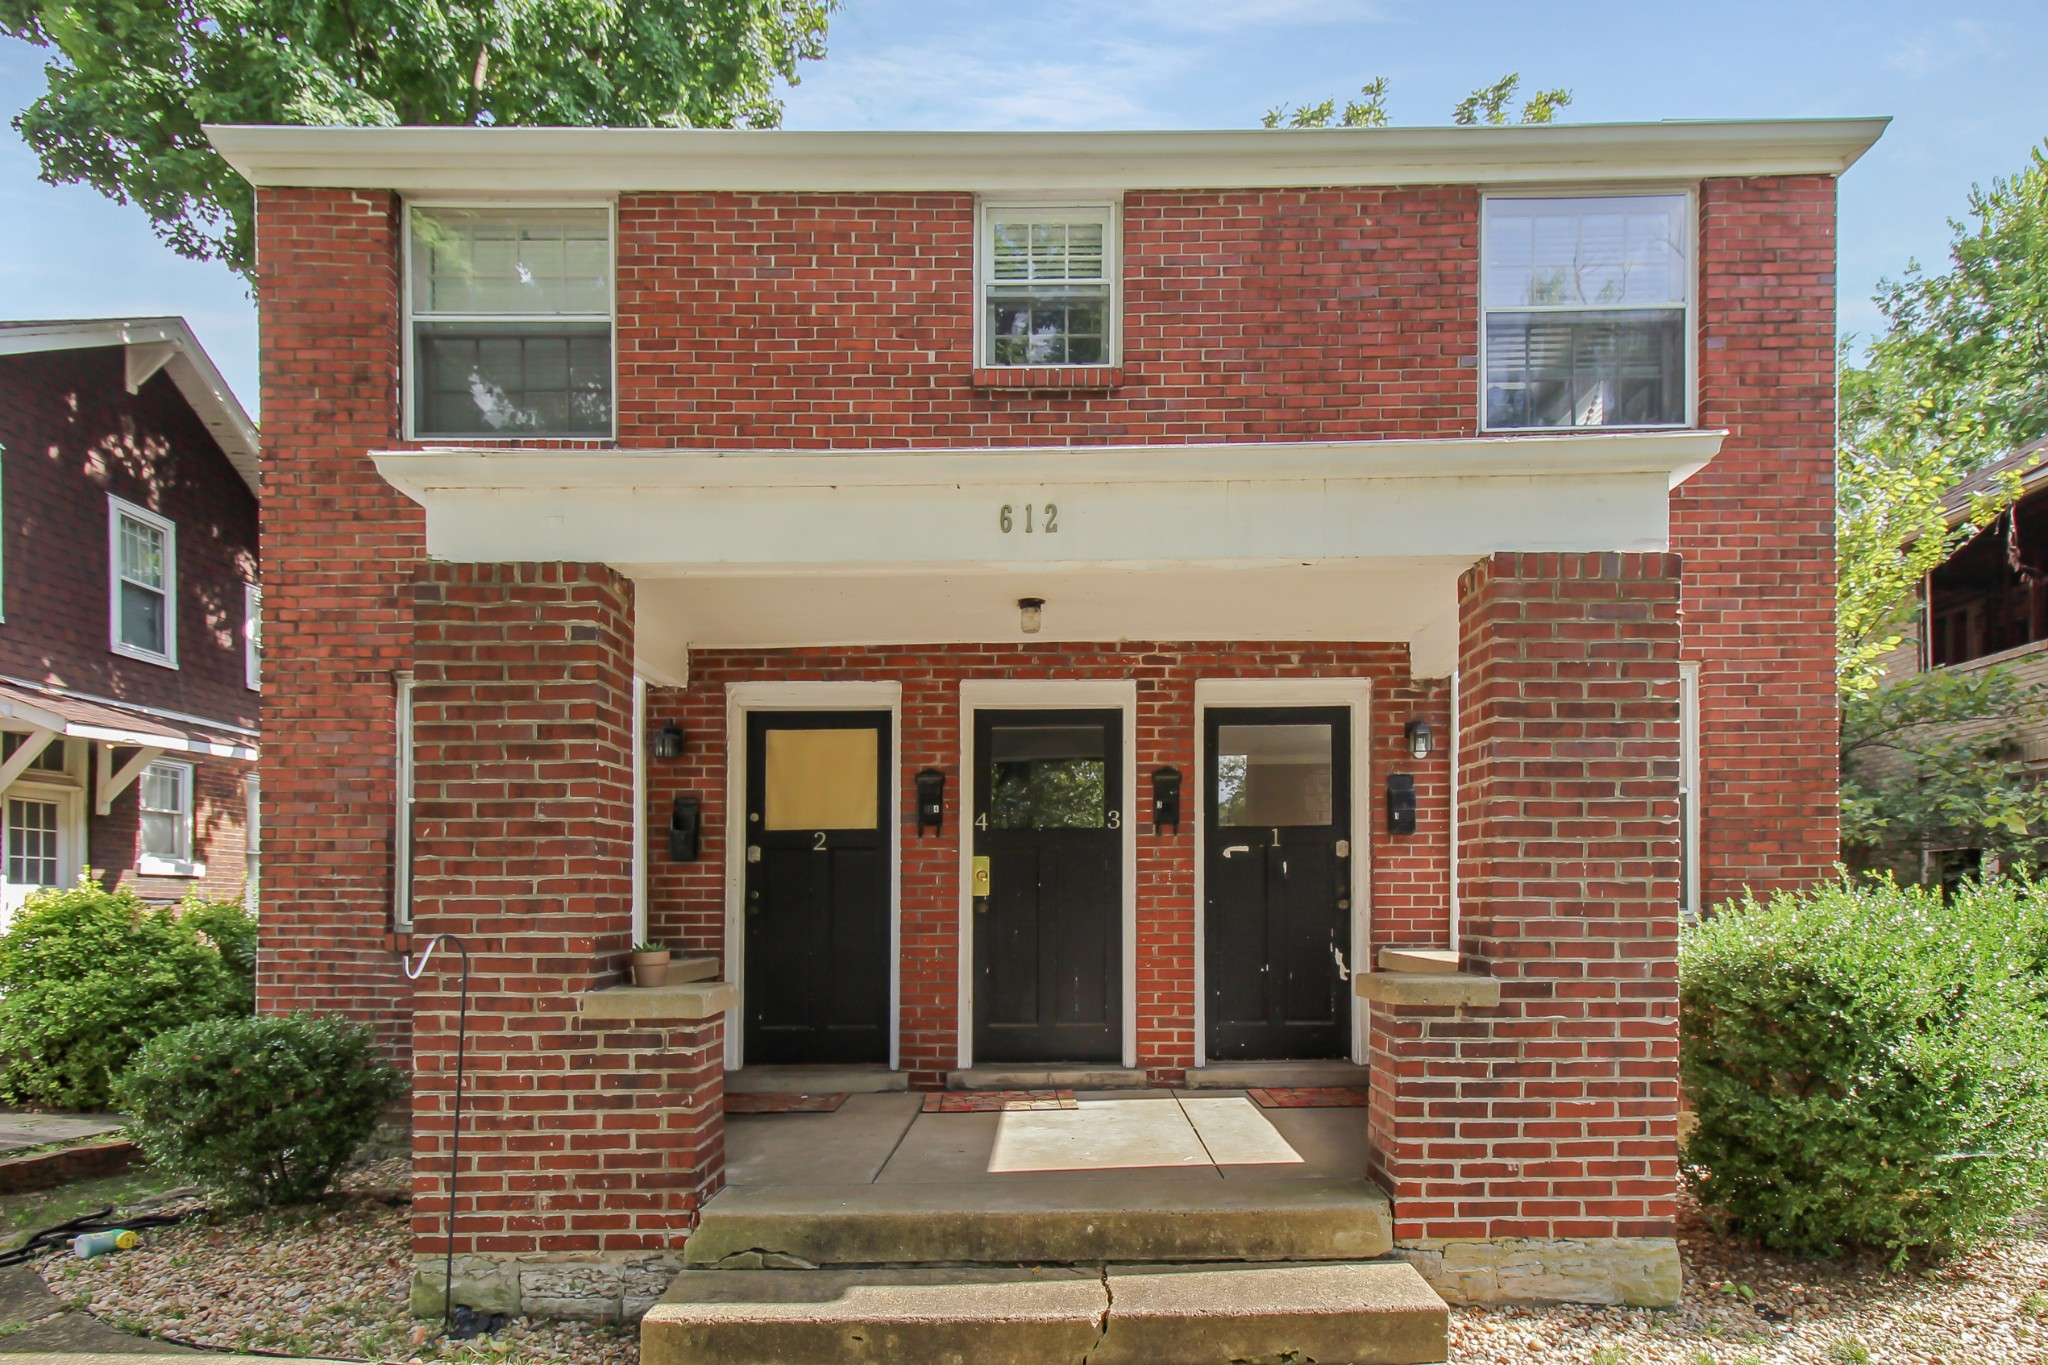 RARE 1945 ALL BRICK QUAD-PLEX IN EAST NASHVILLE!!  RUSSELL ST IS ACROSS FROM EAST PARK.  5TH UNIT MAY BE POSSIBLE IN THE UNFINISHED BASEMENT.  SINGLE GARAGE AND OFF STREET PARKING.  LIVE IN 1 UNIT AND AIR BNB 1 UNIT IS POSSIBLE OR RENT 3 FOR UP TO $1300/MO EACH.  NEW: FRONT DOORS(2) + GARAGE DOOR (2020), GUTTER GUARDS (2019), ROOF (2016) ALL UNITS PAINTED (2015-2018) HVAC (2015), HARDWOODS REFINISHED, 2 KITCHENS AND 2 BATH REFRESHED, UPDATED KITCHEN APPLIANCES.  BASEMENT STORAGE + WASHER/DRYER.